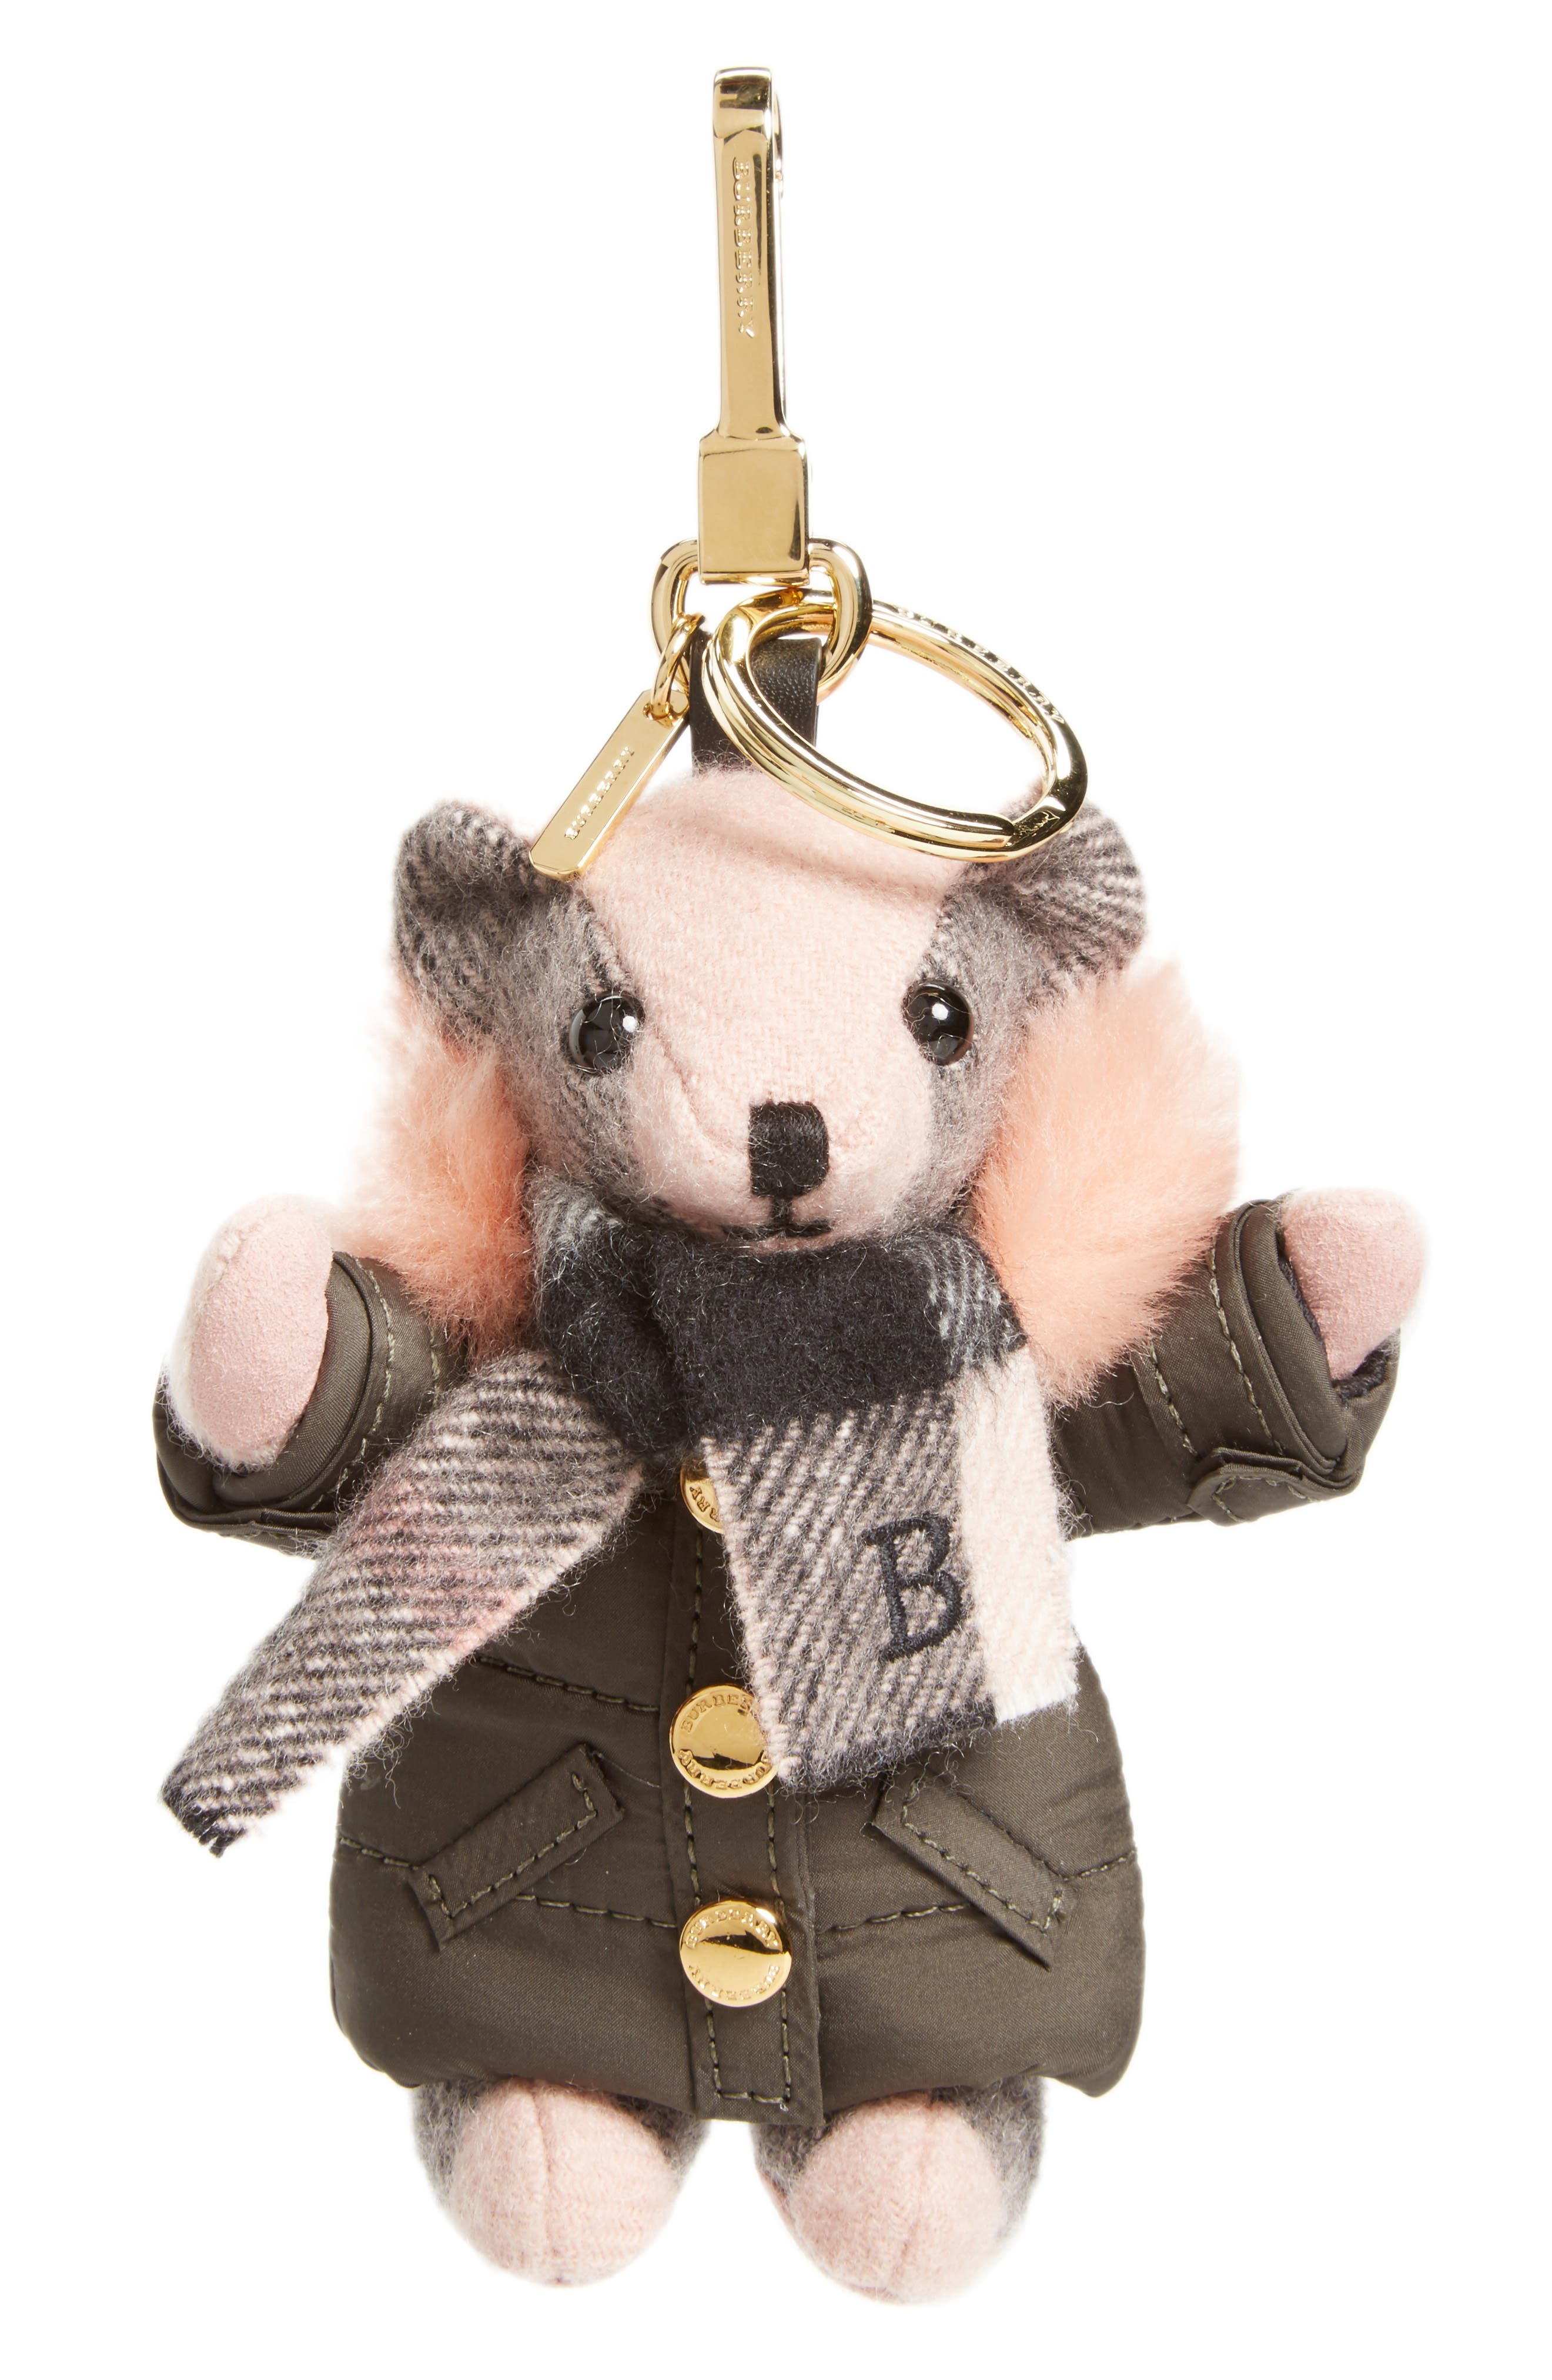 Alternate Image 1 Selected - Burberry Thomas Bear Bag Charm with Genuine Shearling Trim Puffer Jacket & Scarf